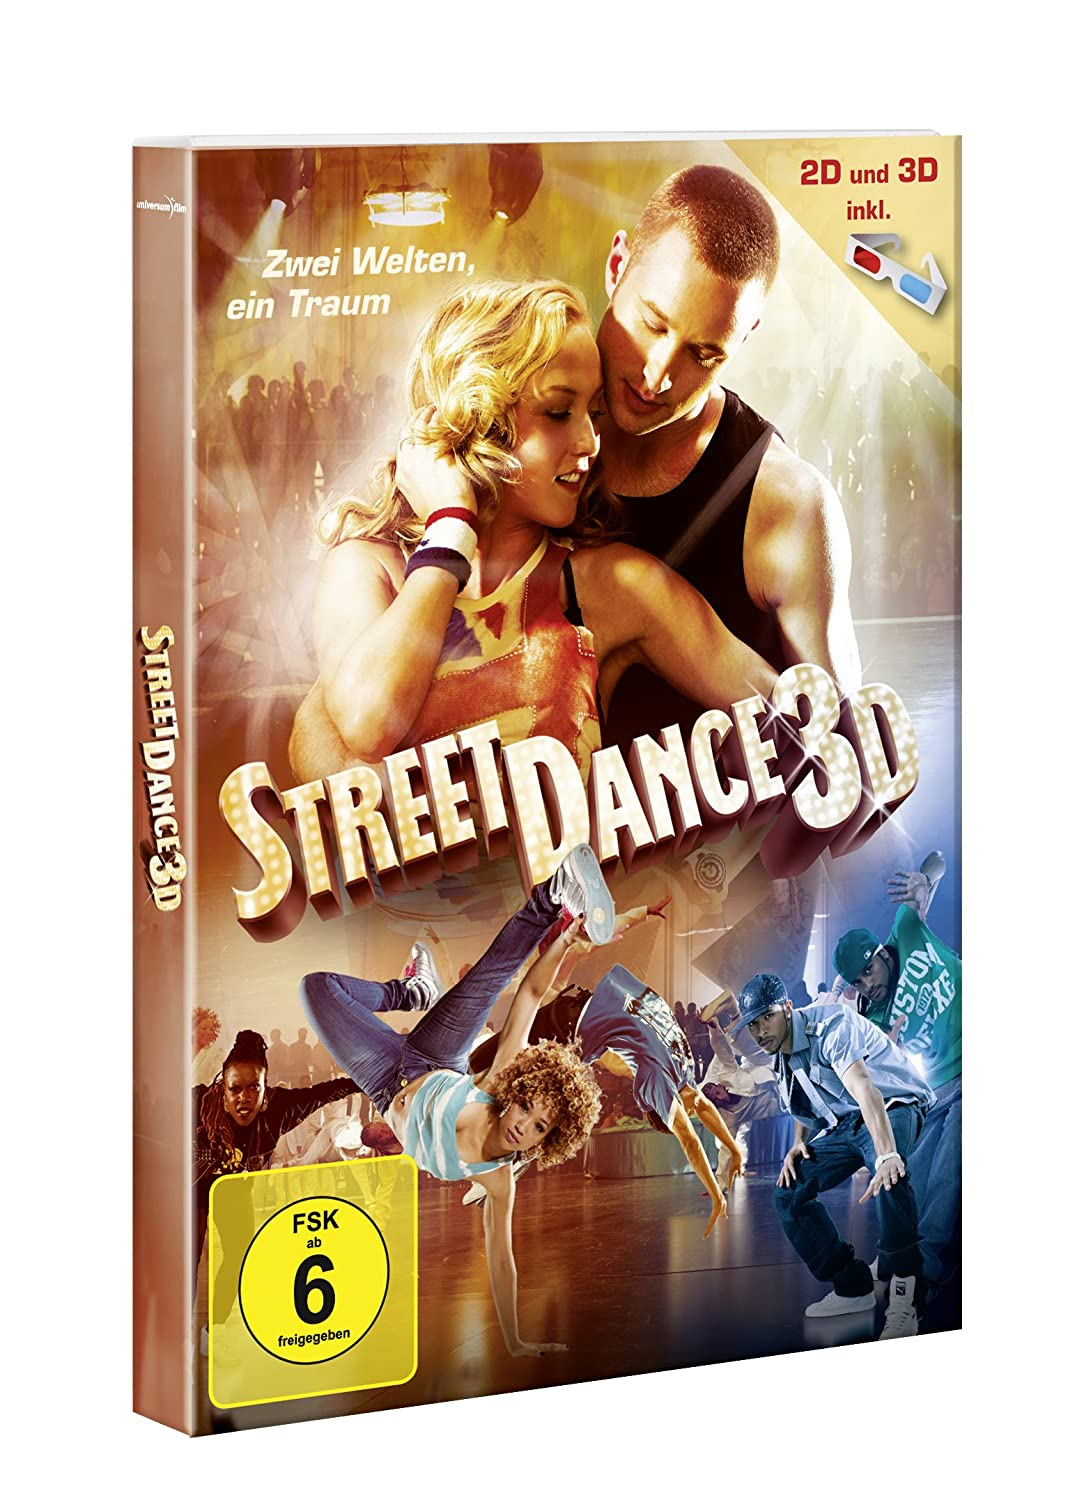 StreetDance 3D [2 DVDs]: Amazon.de: Nichola Burley, Richard Winsor ...